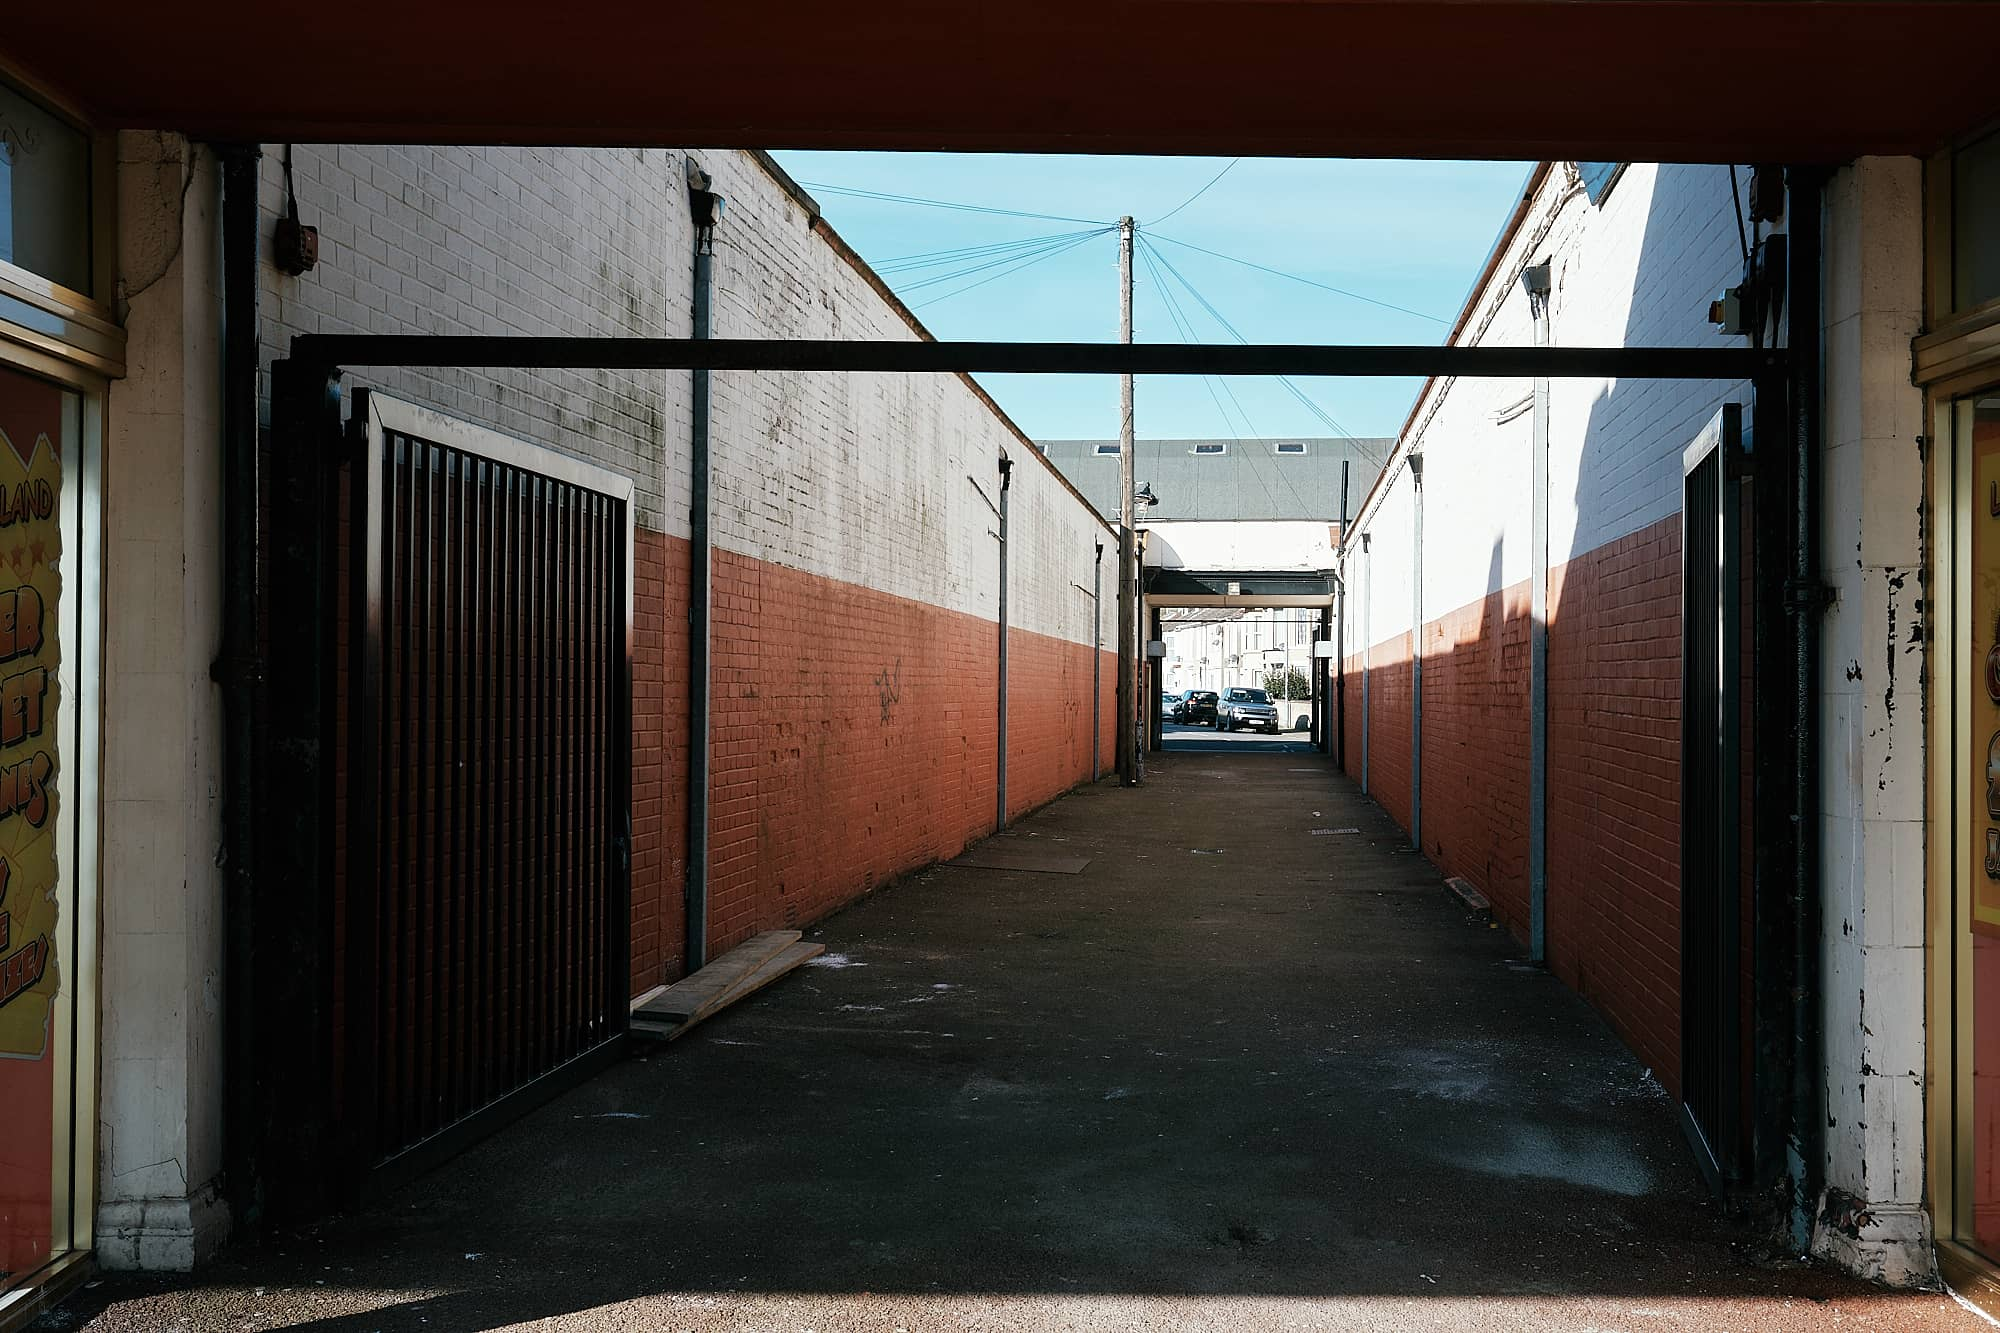 shaded alleyway with garages